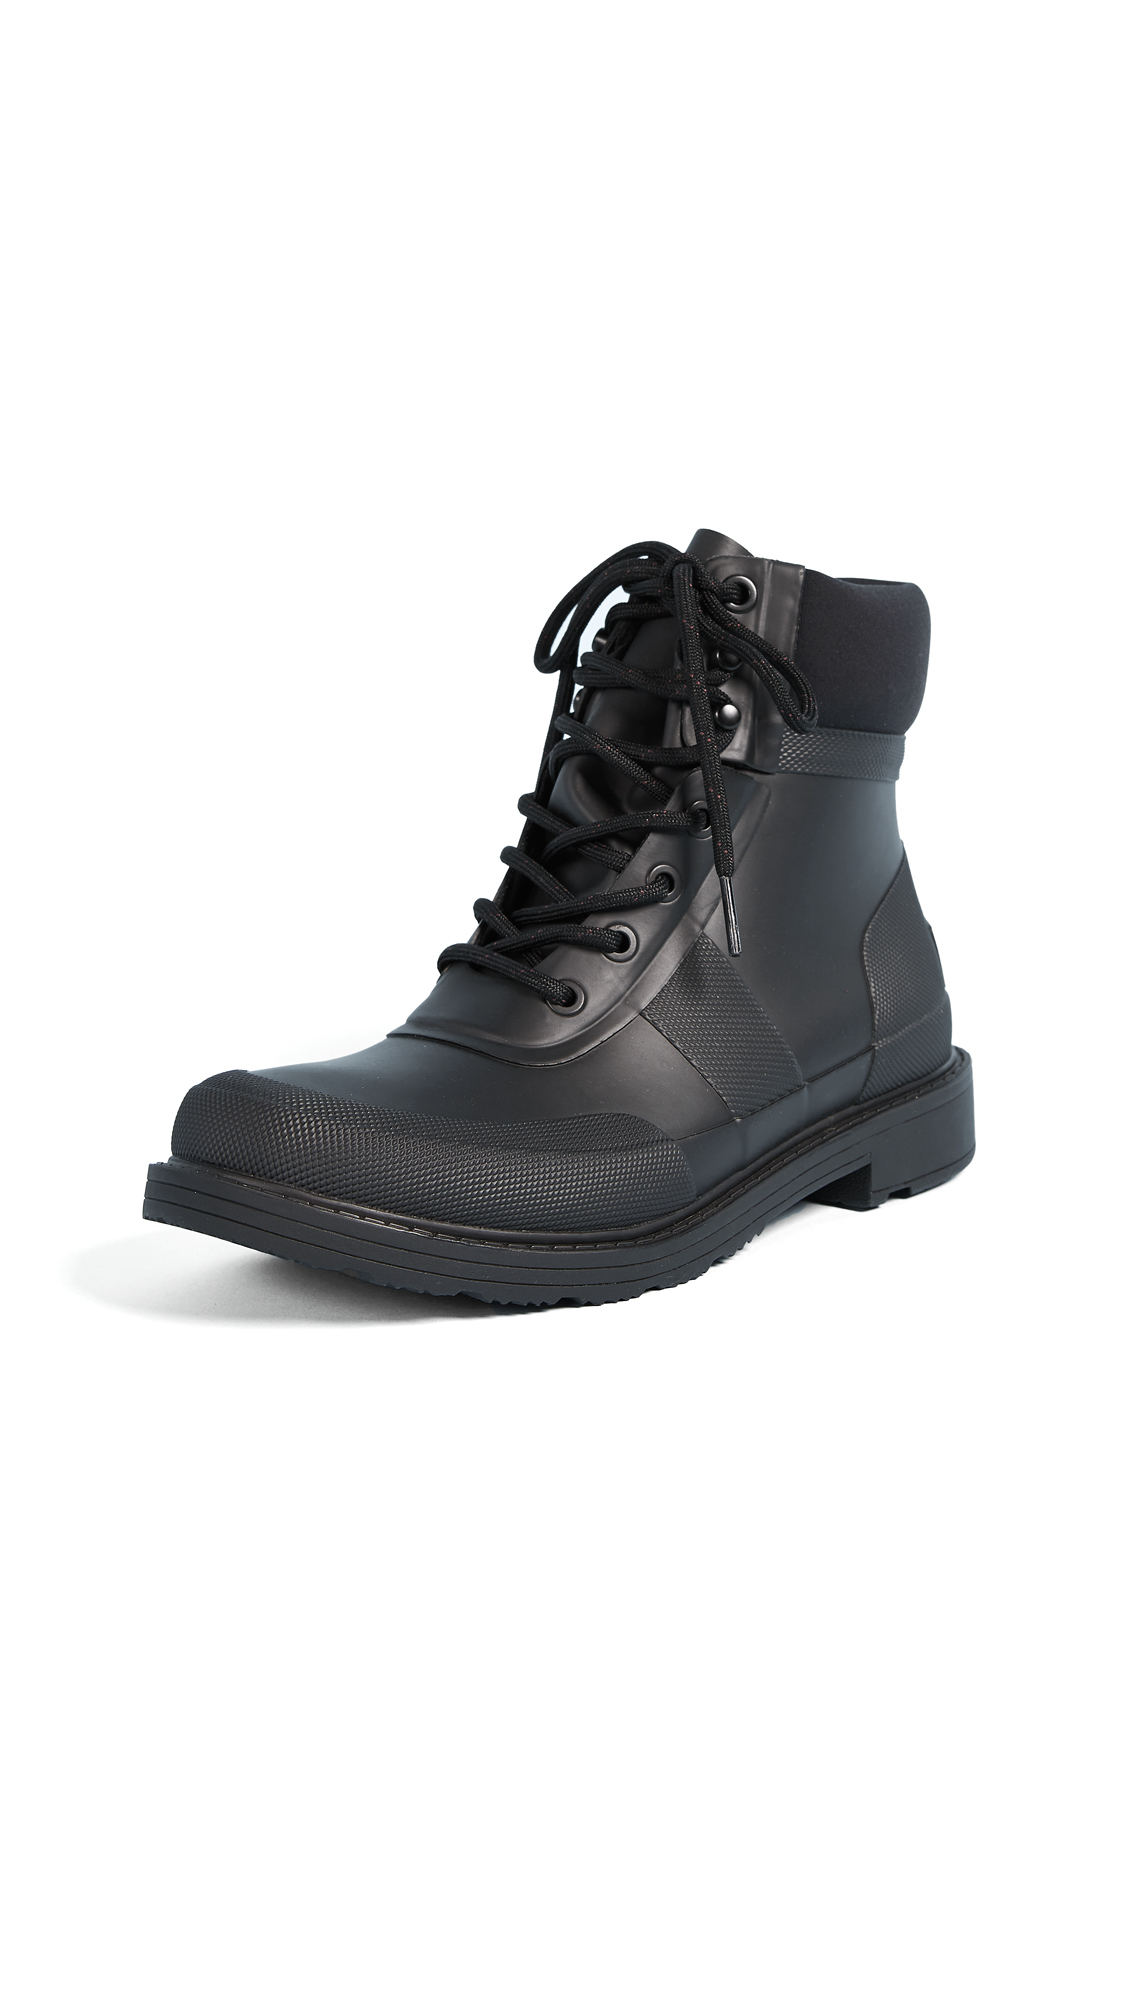 Hunter Boots Original Rubber Commando Boots